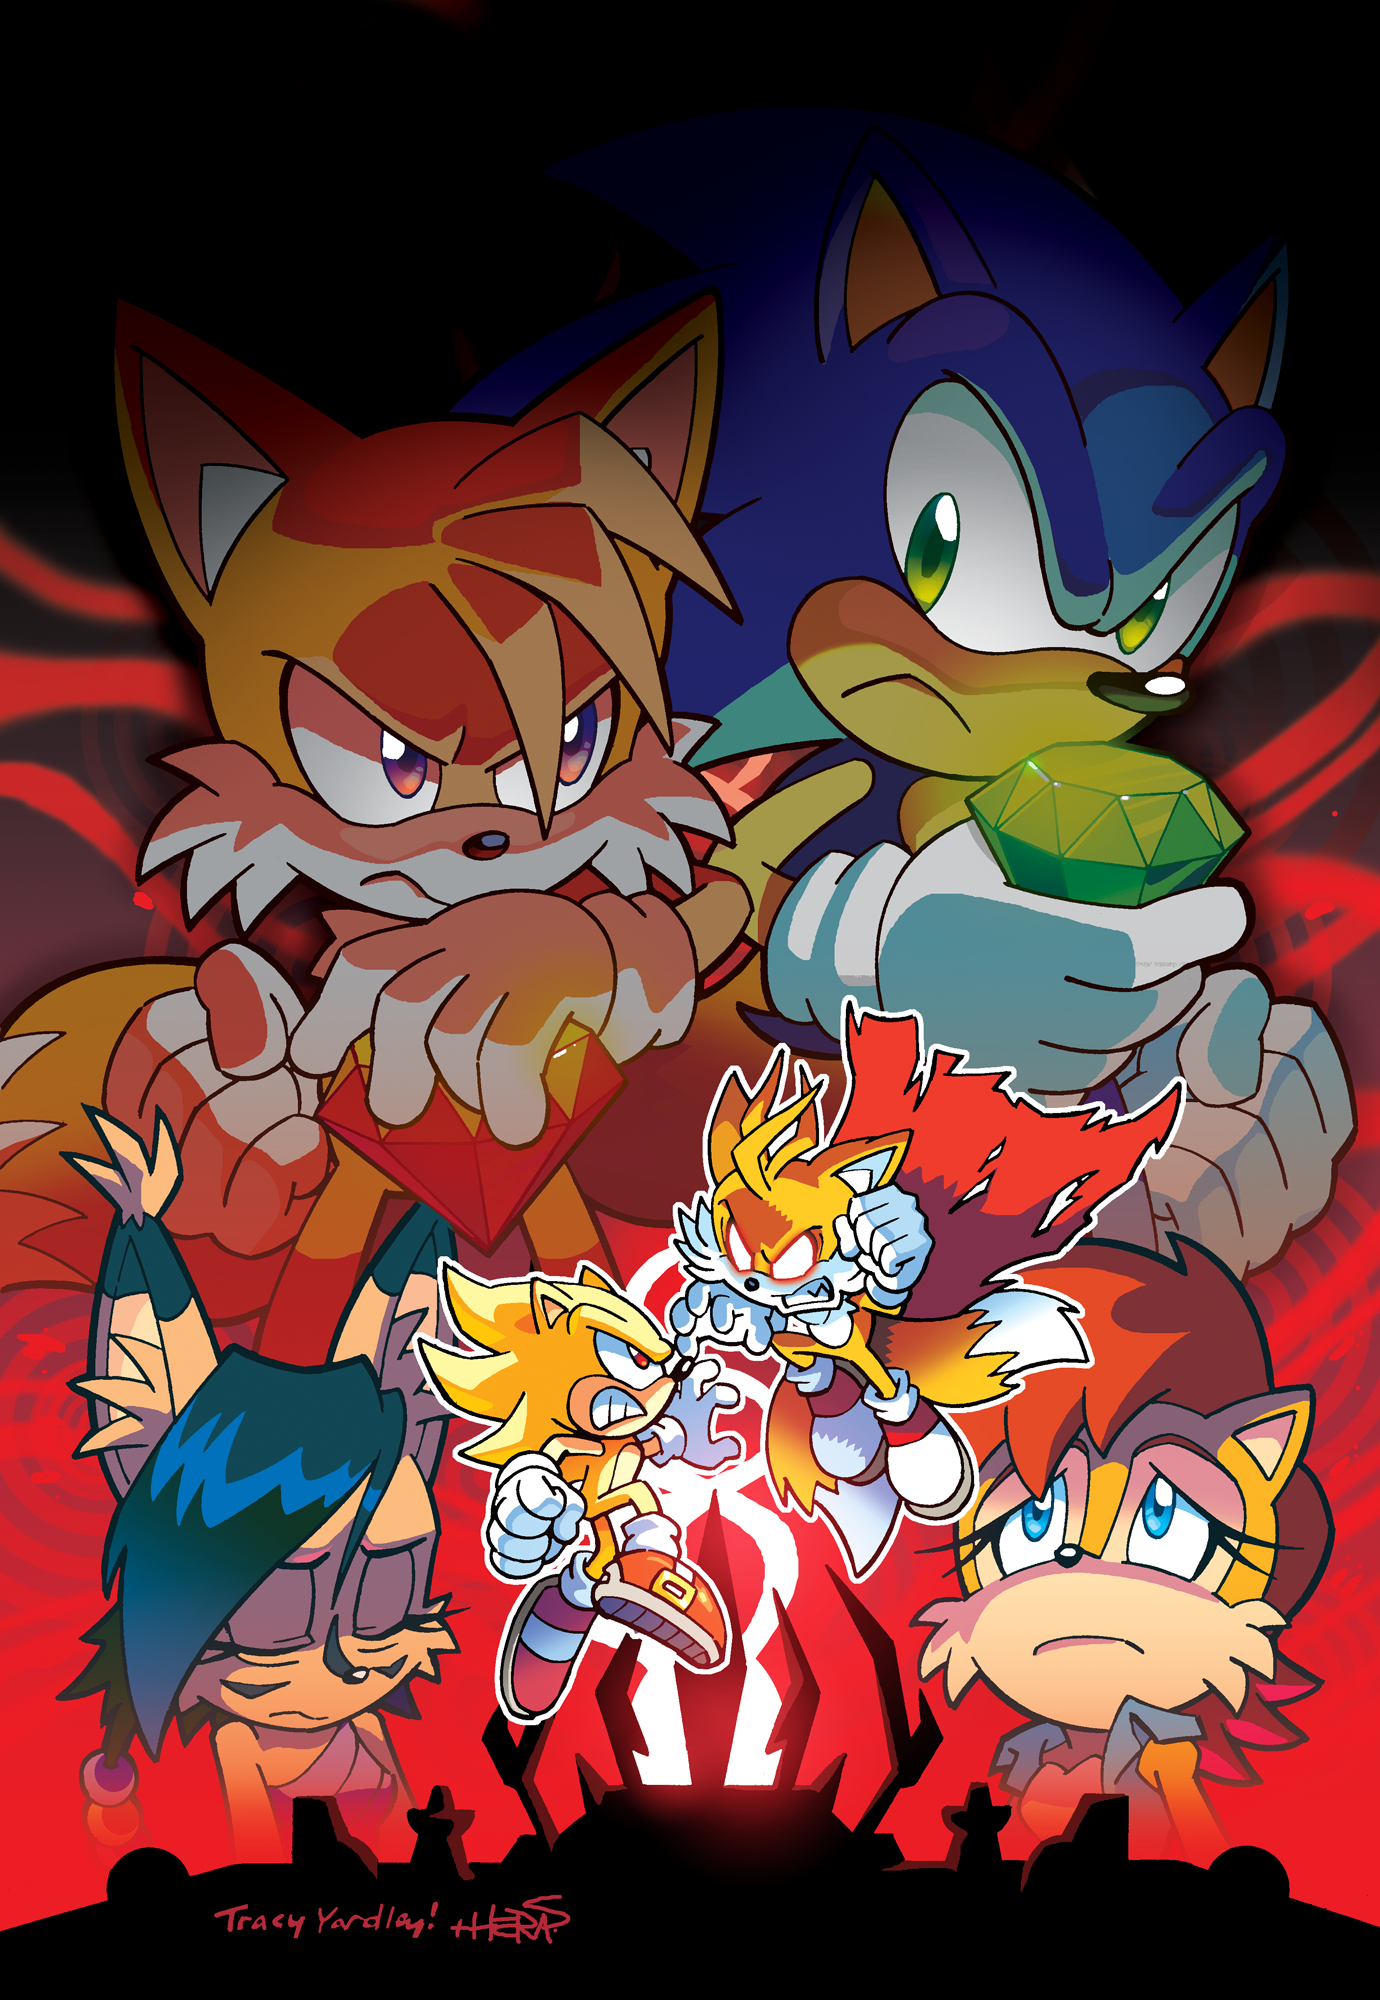 Sonic And Tails VS Shadow Scene Creator on Scratch